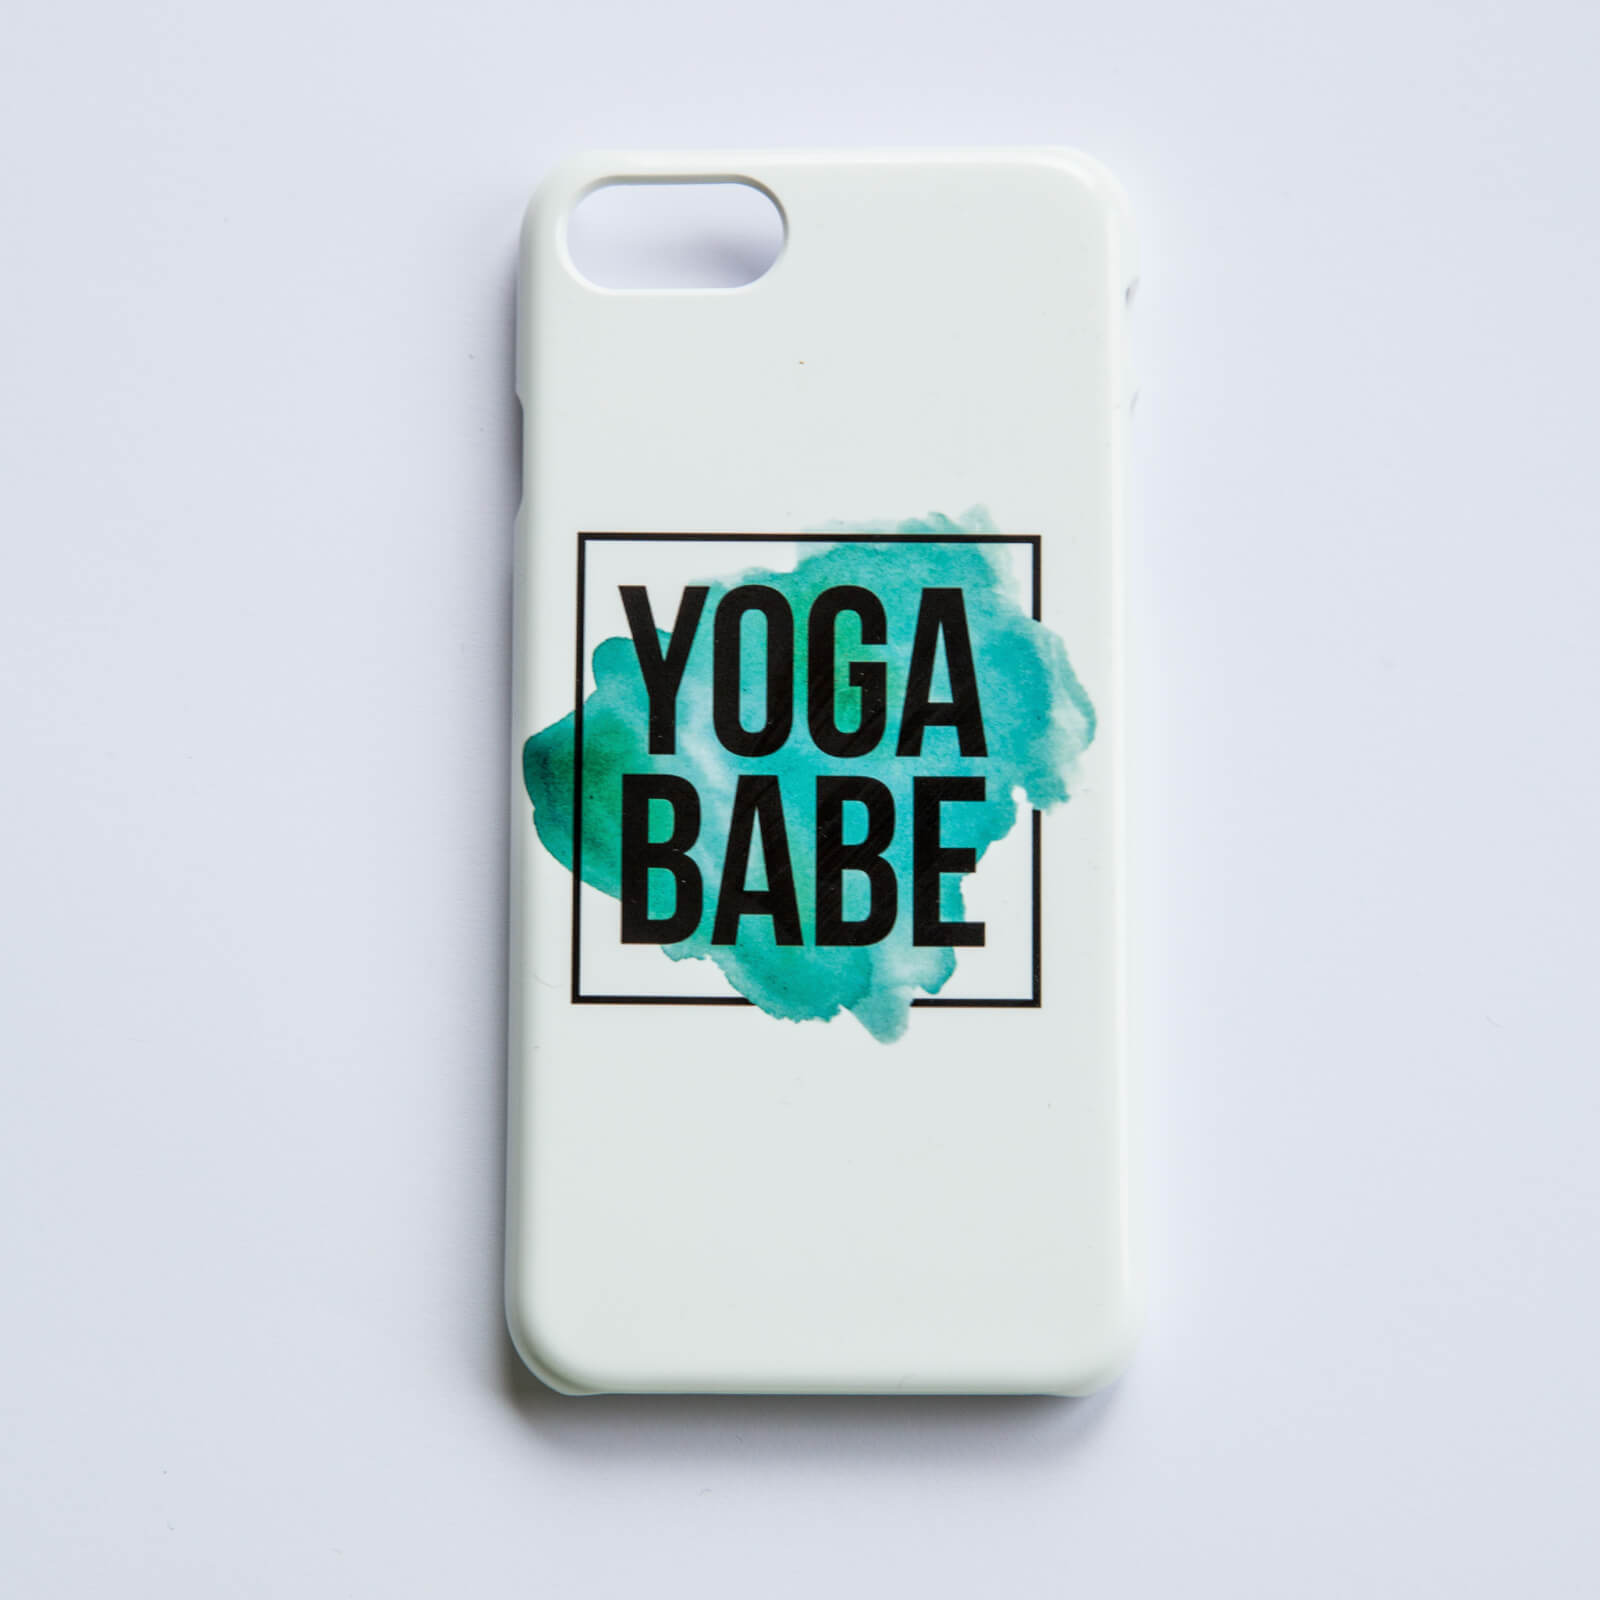 Yoga Babe Phone Case for iPhone and Android - iPhone 5/5S - Snap Case - Matte